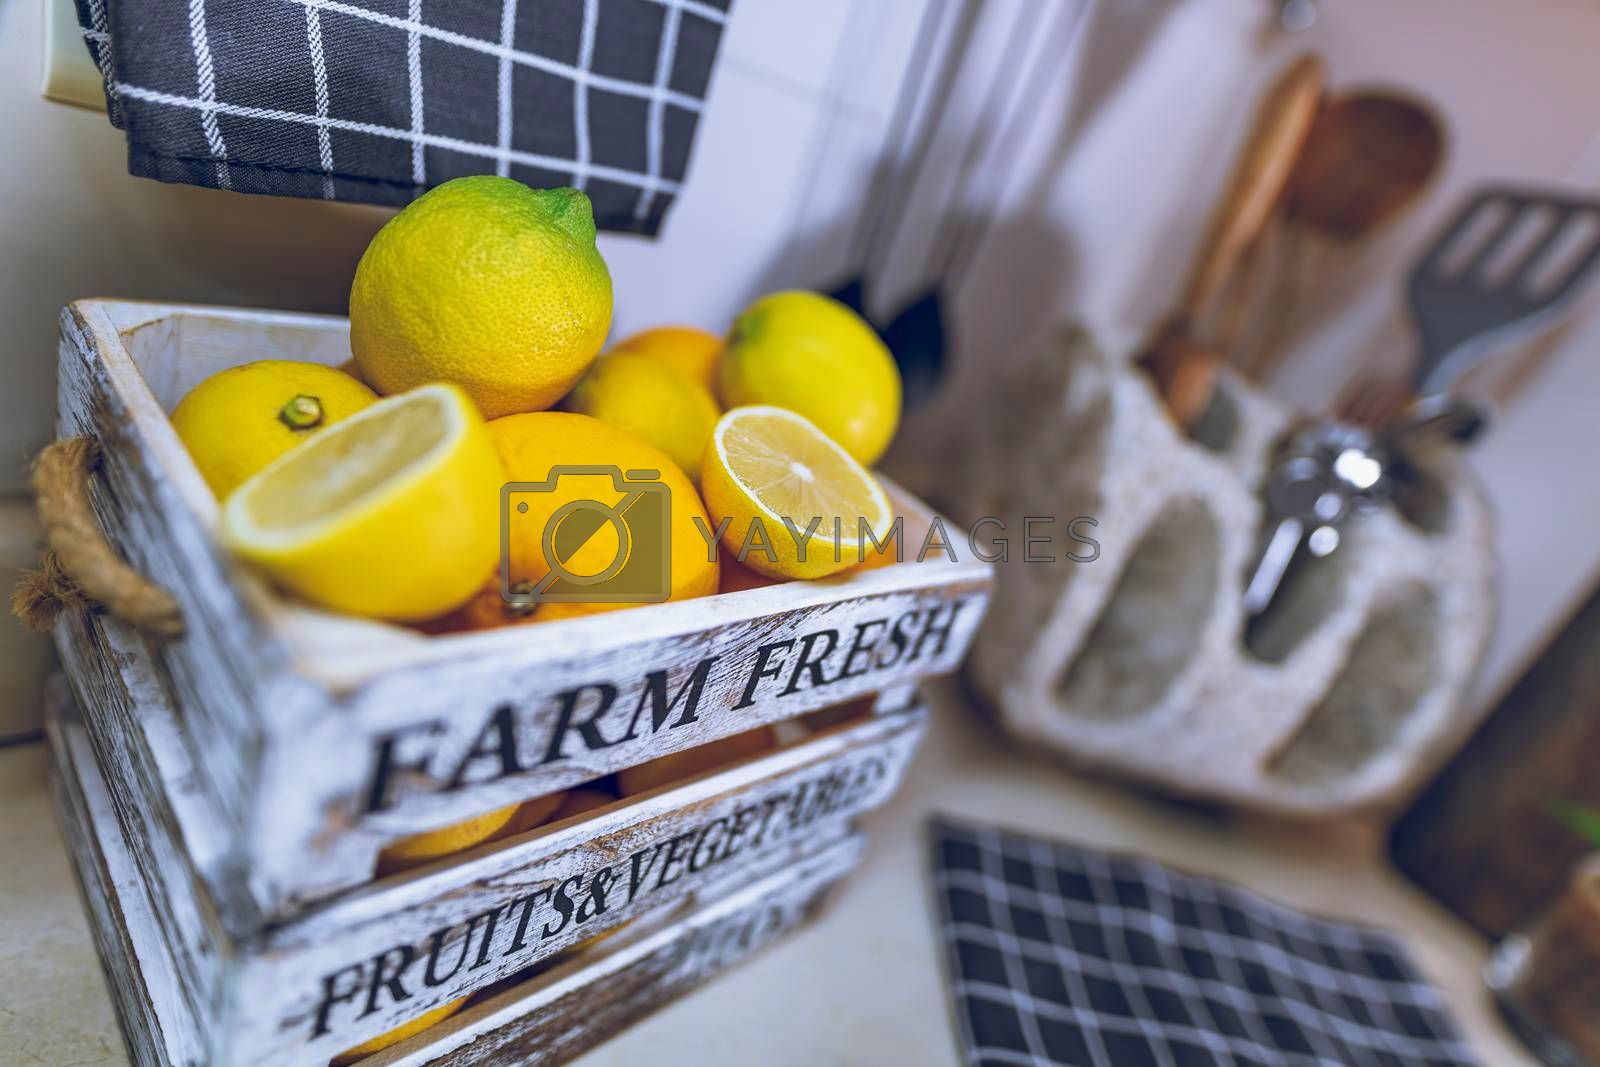 Kitchen Interior. Selective Focus on a Box with Fresh Ripe Lemons. Tasty Citrus Fruits for Lemonade. Home Life. Healthy Organic Nutrition.